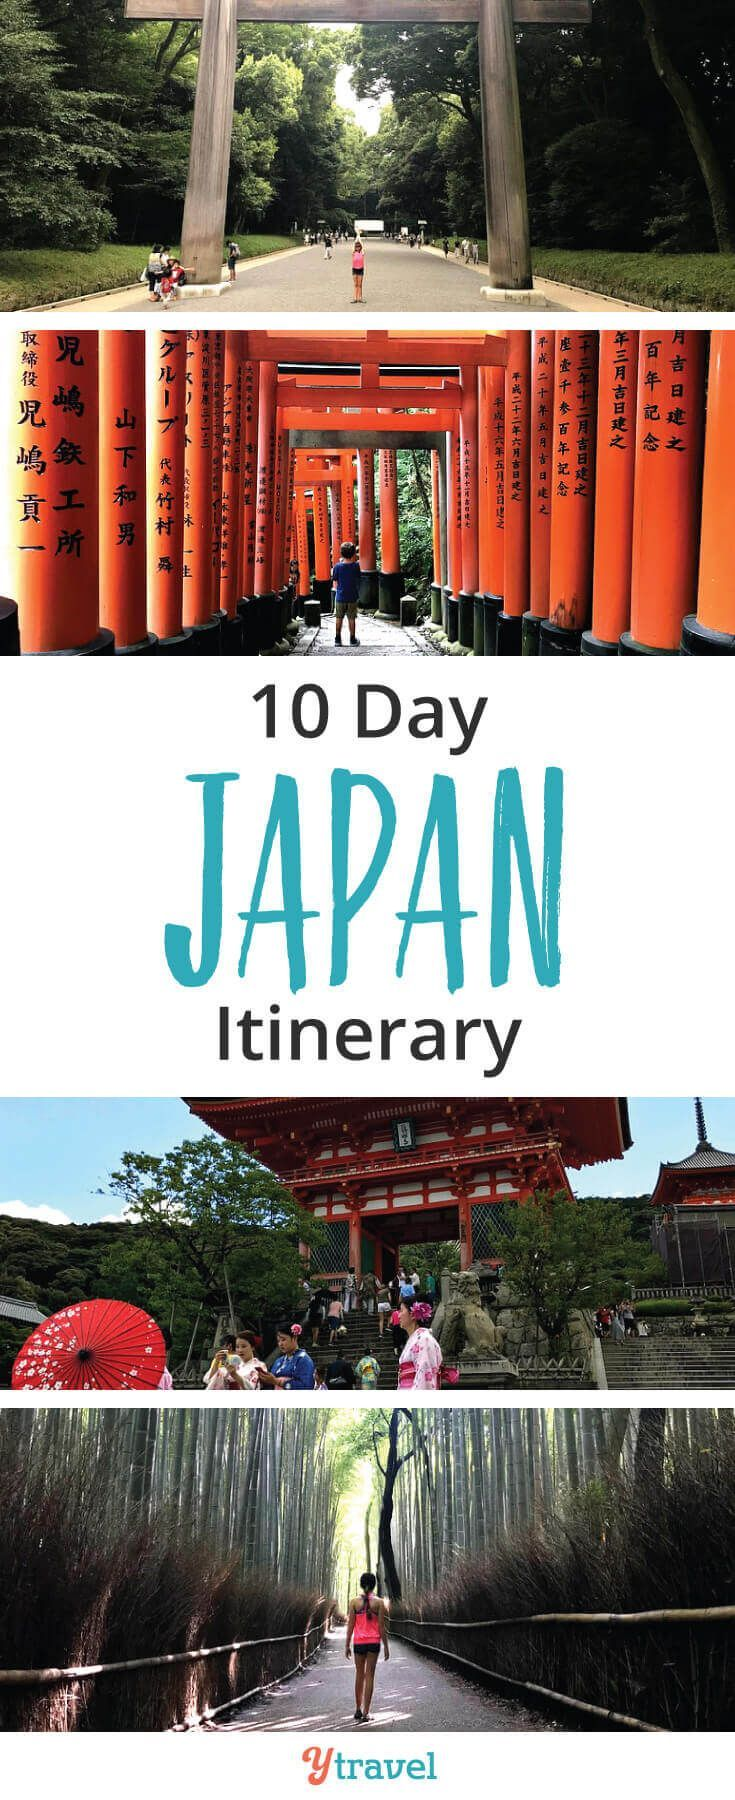 10 days in Japan itinerary. If you are planning a trip to Japan, this list of places to visit in Japan is perfect for first time visitors who want to see the highlights of Tokyo and Kyoto, taste the food, see the landscapes, the temples, experience the culture, and much more! #Japan #japanese #japanesefood #travel